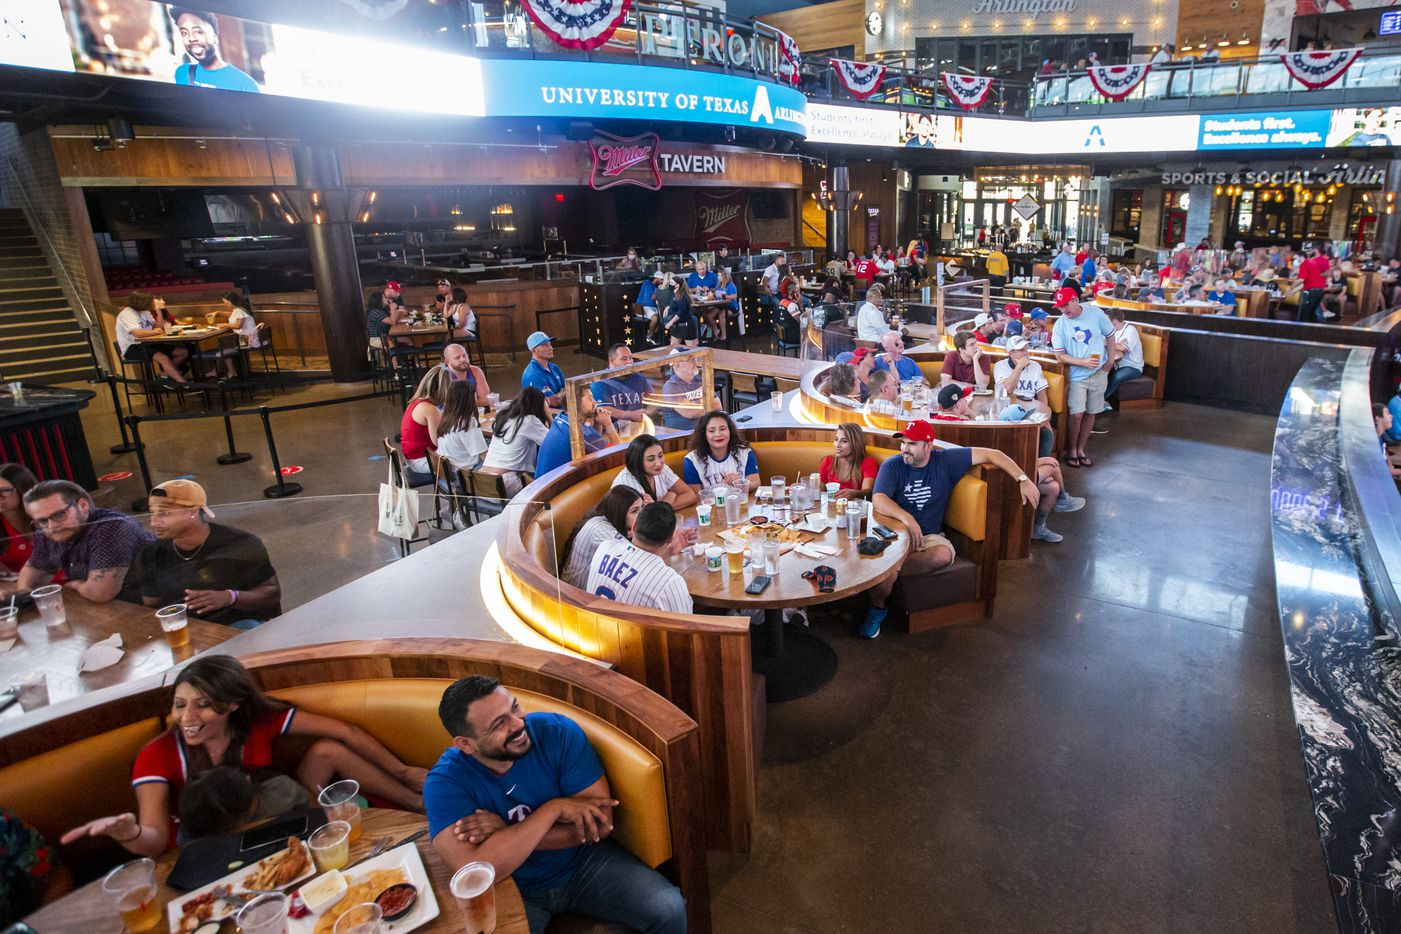 Fans eat and gather during opening day of the Texas Rangers season at Texas Live! in Arlington, Texas, on Friday, July 24, 2020. The Rangers played the Colorado Rockies at the new Globe Life Field stadium, but fans had to watch on televised screens outside due to the ongoing pandemic. (Lynda M. Gonzalez/The Dallas Morning News)